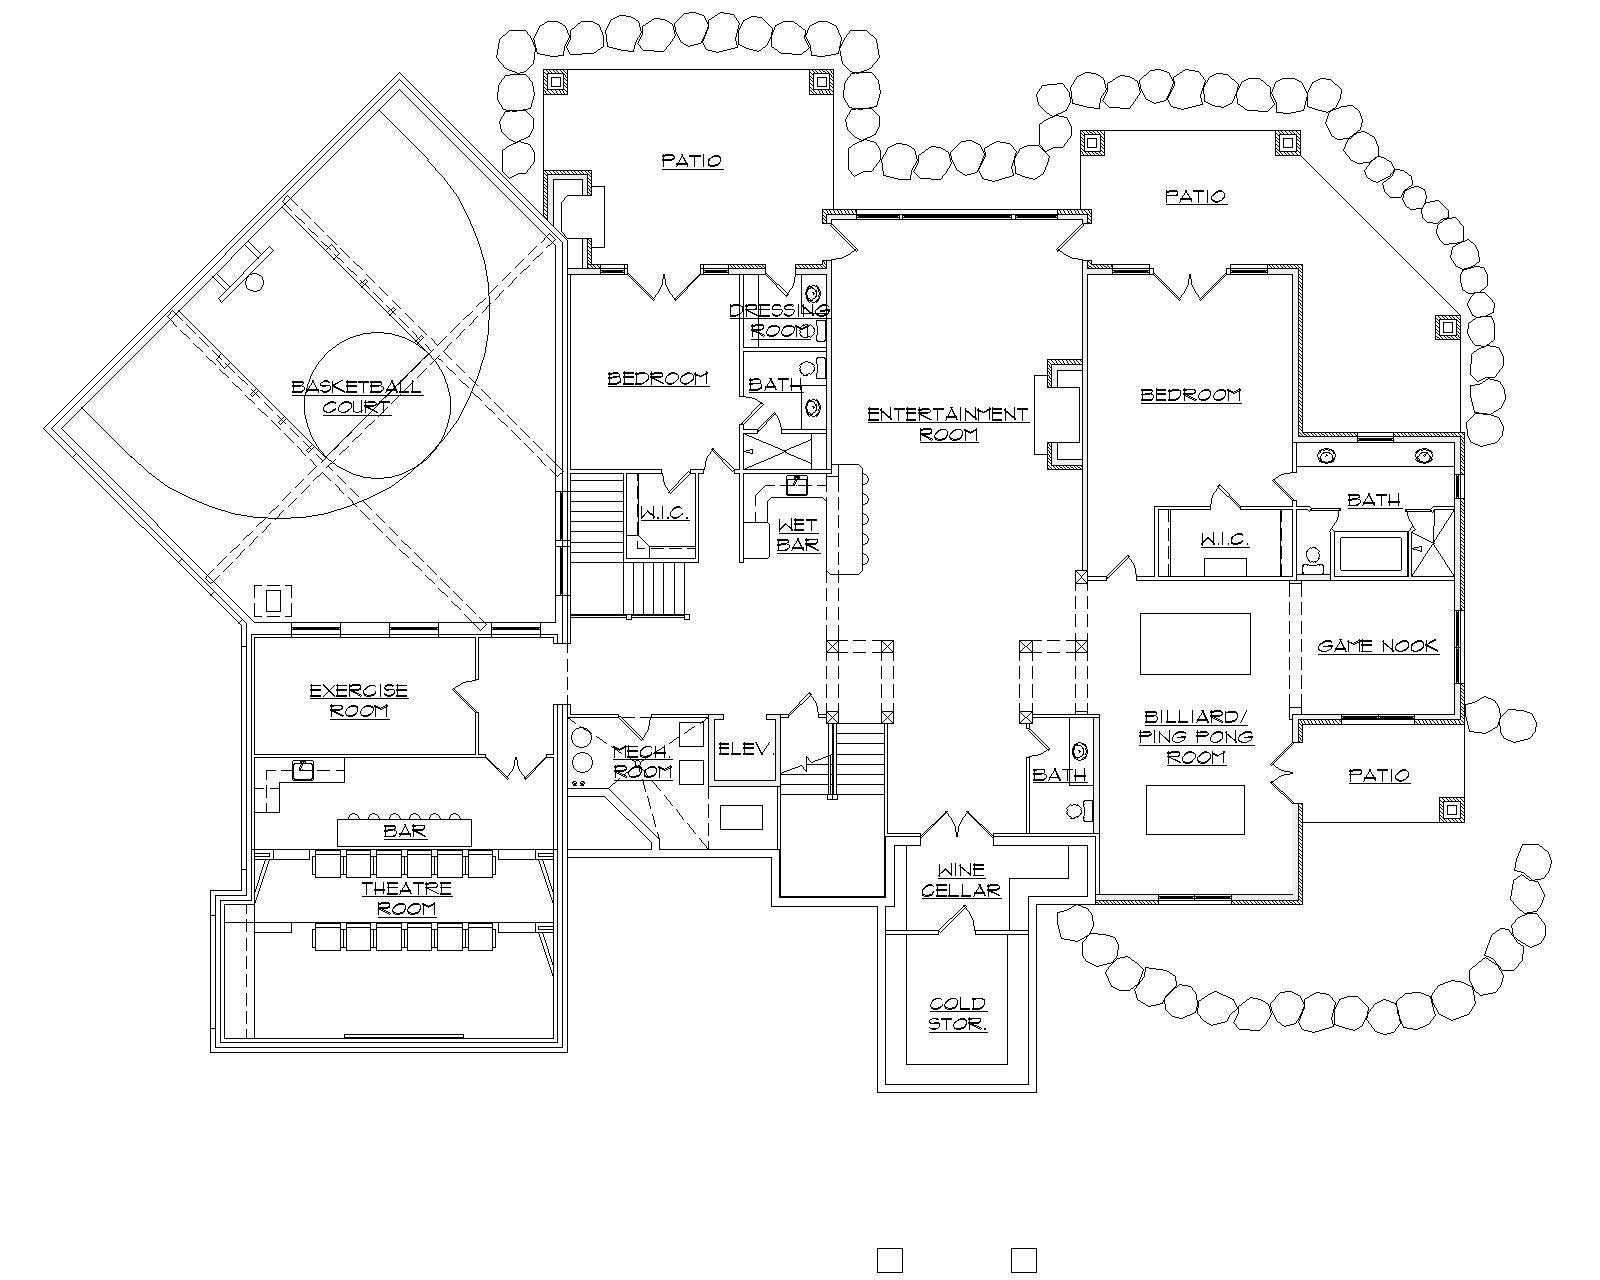 House plans with indoor basketball court how to costs for Home plans with indoor sports court